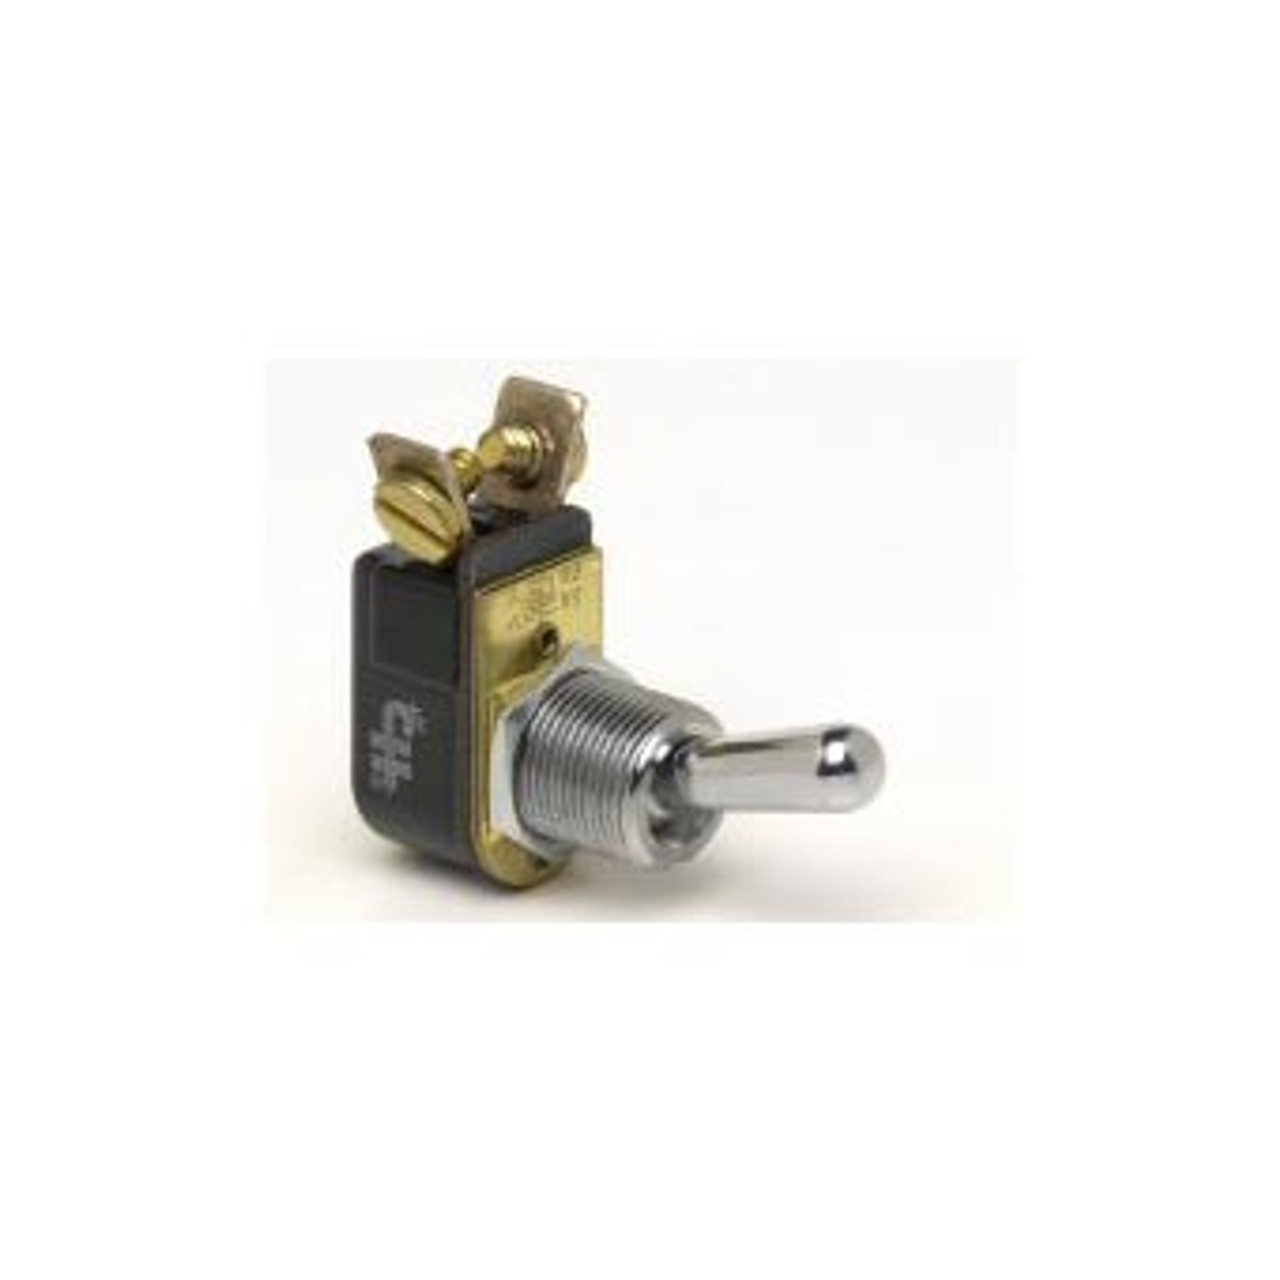 TOGGLE SWIT OFF-ON 10A 2S MED DUTY 2 SCREW BALL BAT